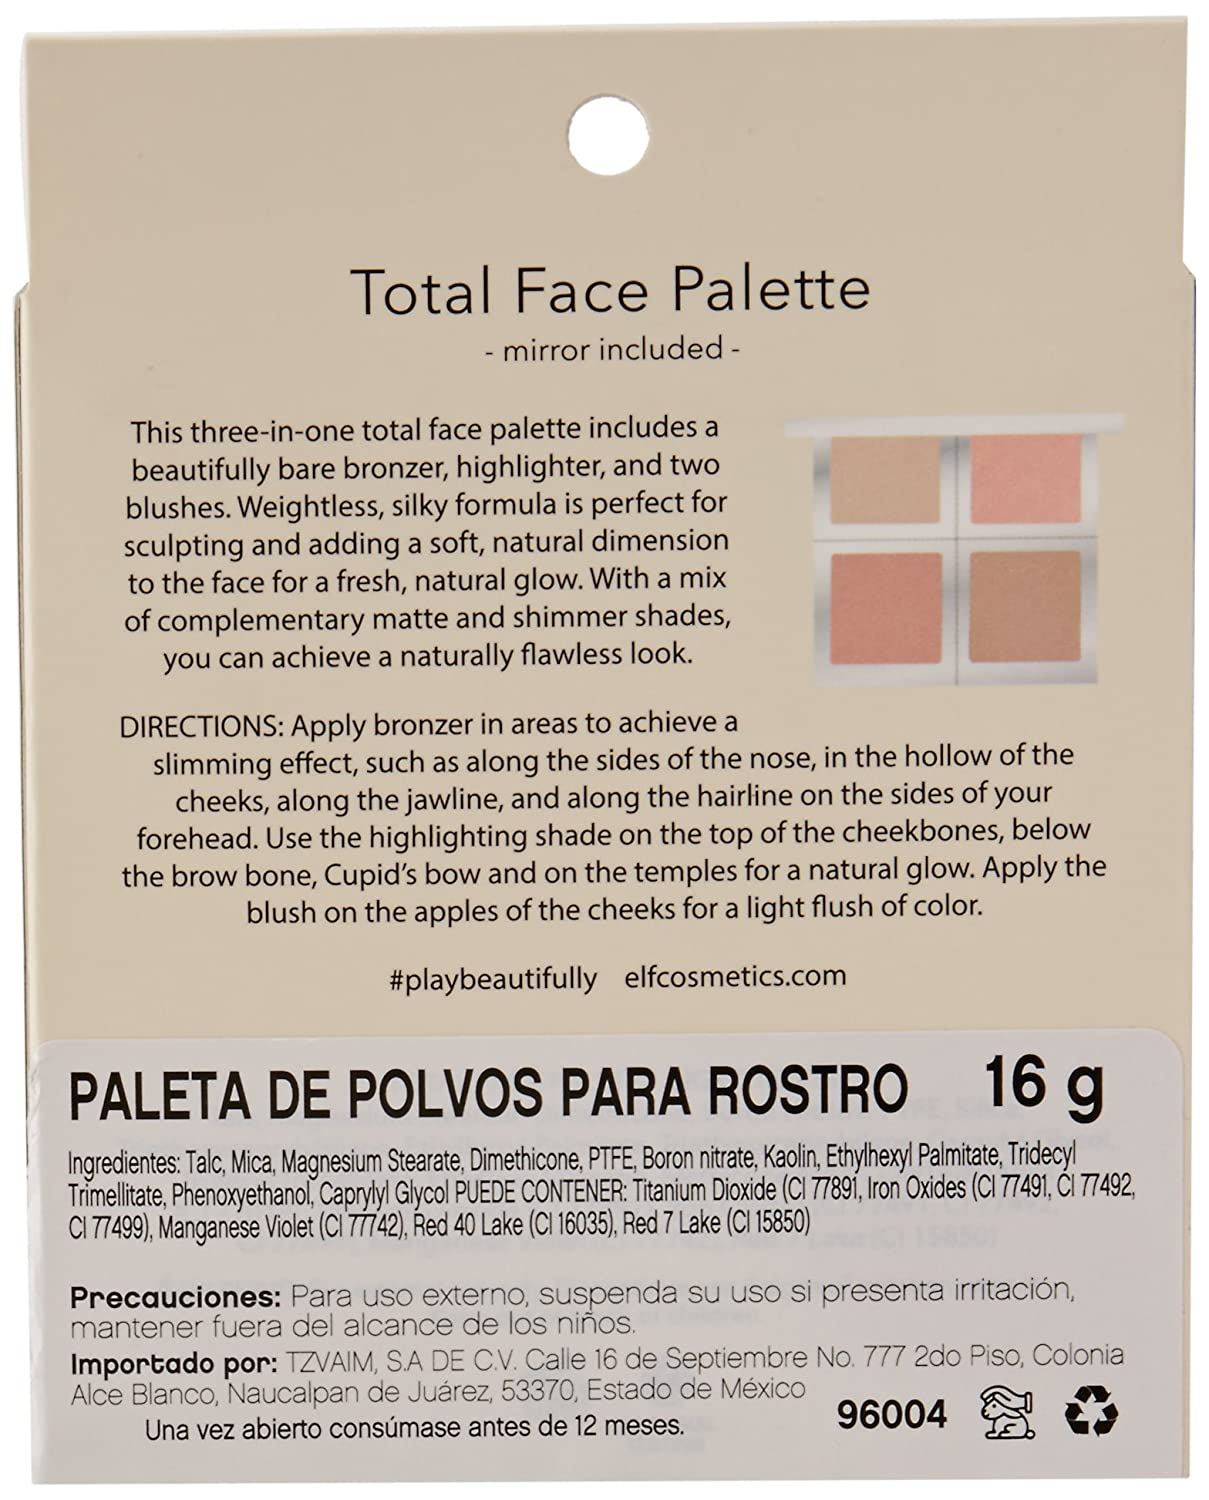 e.l.f. Cosmetics Paleta de cara de brillo natural hermosamente desnuda.: Amazon.es: Belleza